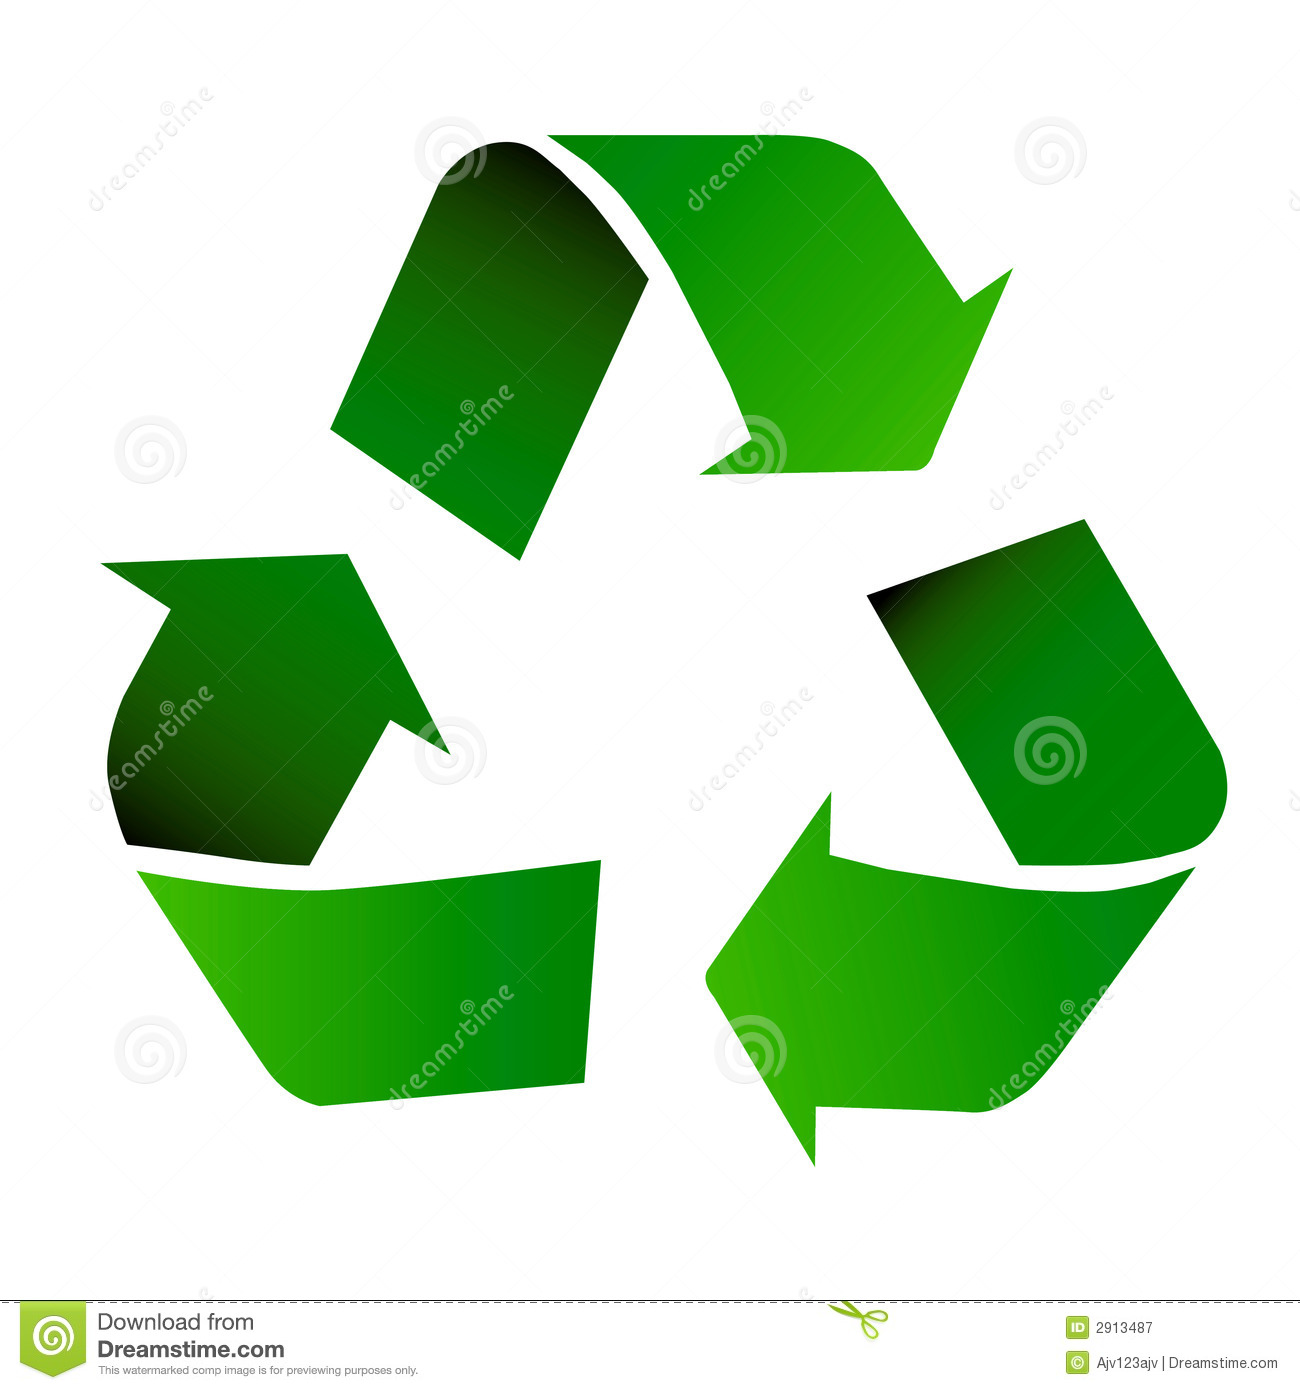 http://www.dreamstime.com/royalty-free-stock-photography-recycle-symbol-image2913487